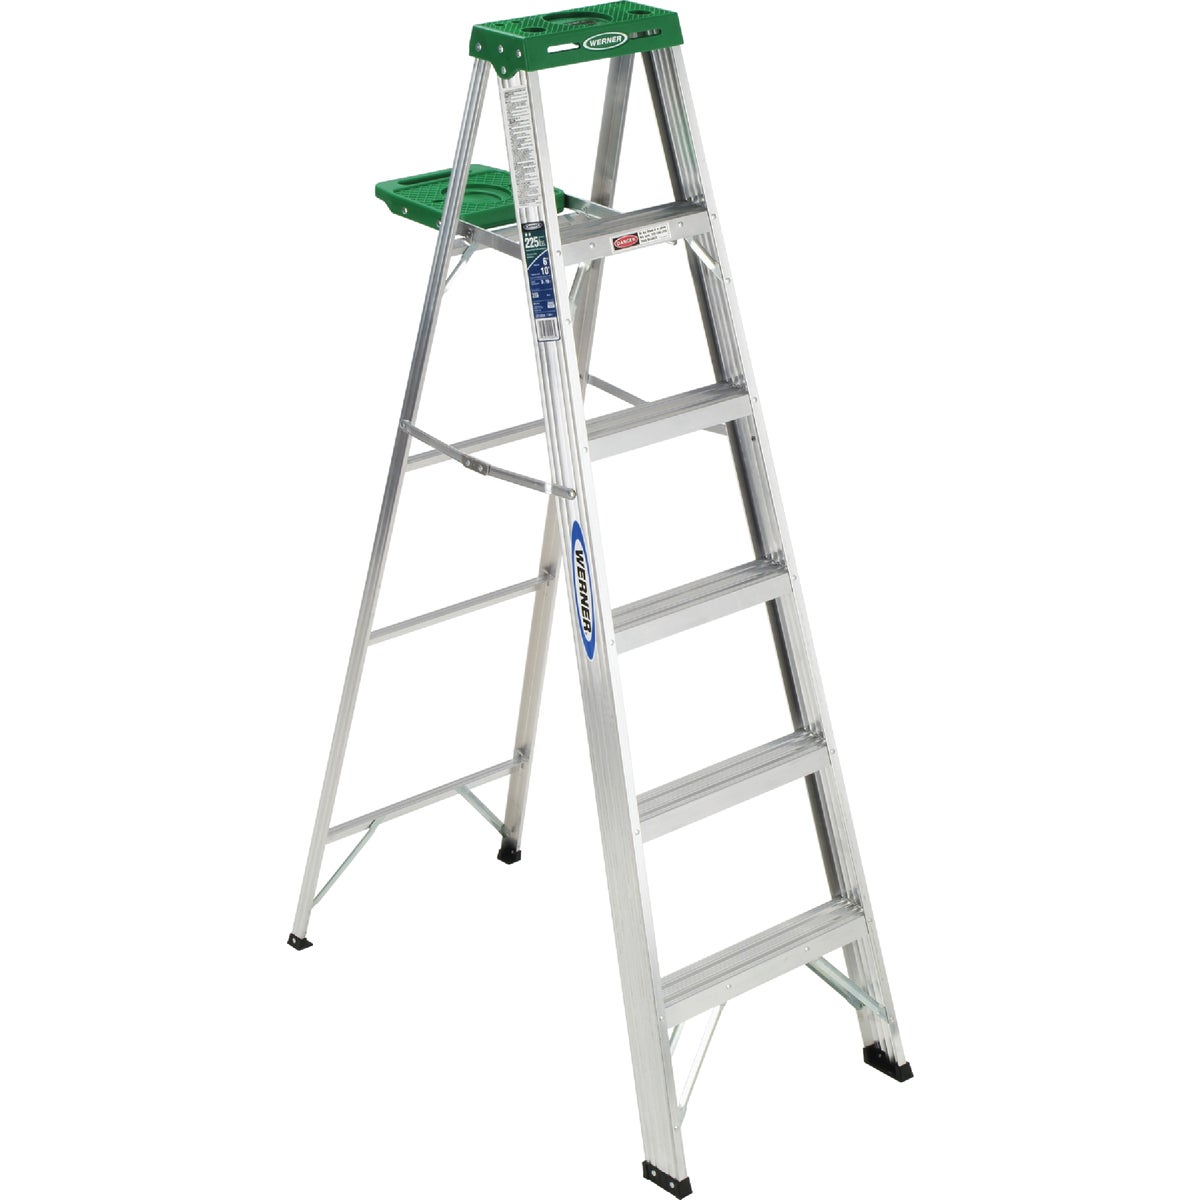 T-2 6' ALUM STEPLADDER - 356 by Werner Co